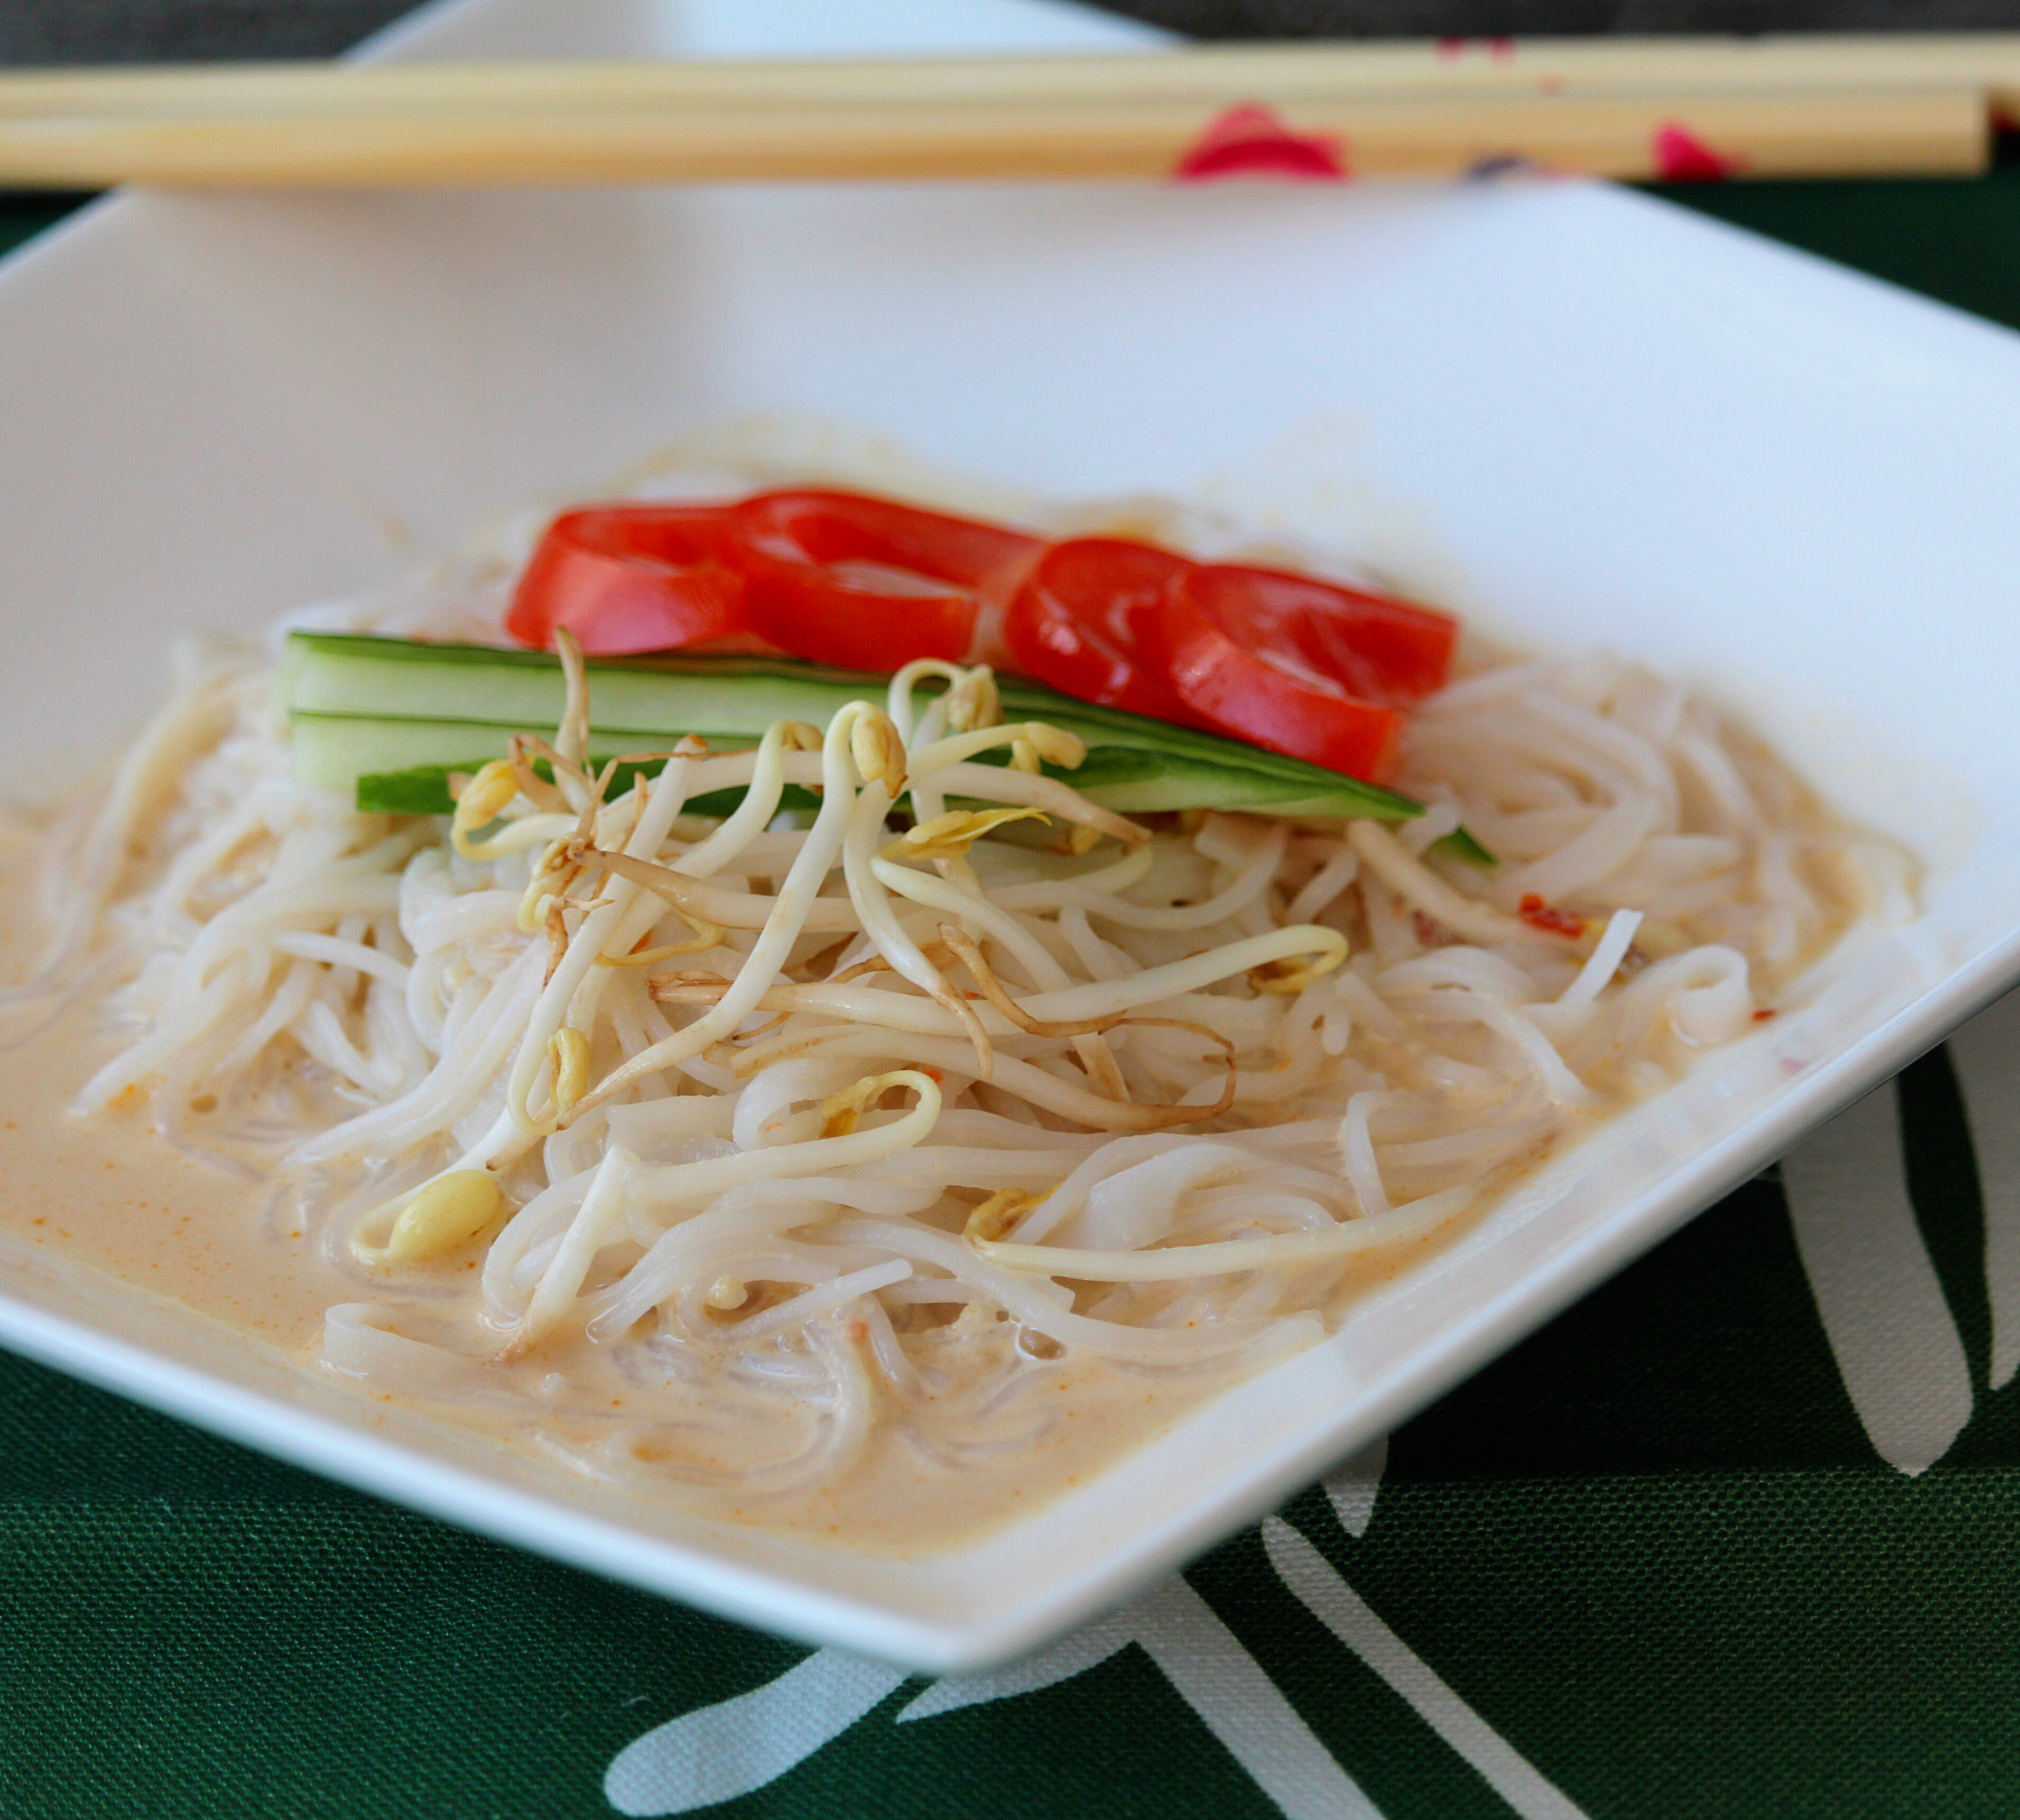 Soybeans are cooked and pureed to make the base for this healthy cold soup; pour over your favorite type of noodles and top with tomato, cucumber, and sesame seeds to make this popular Korean summertime dish.